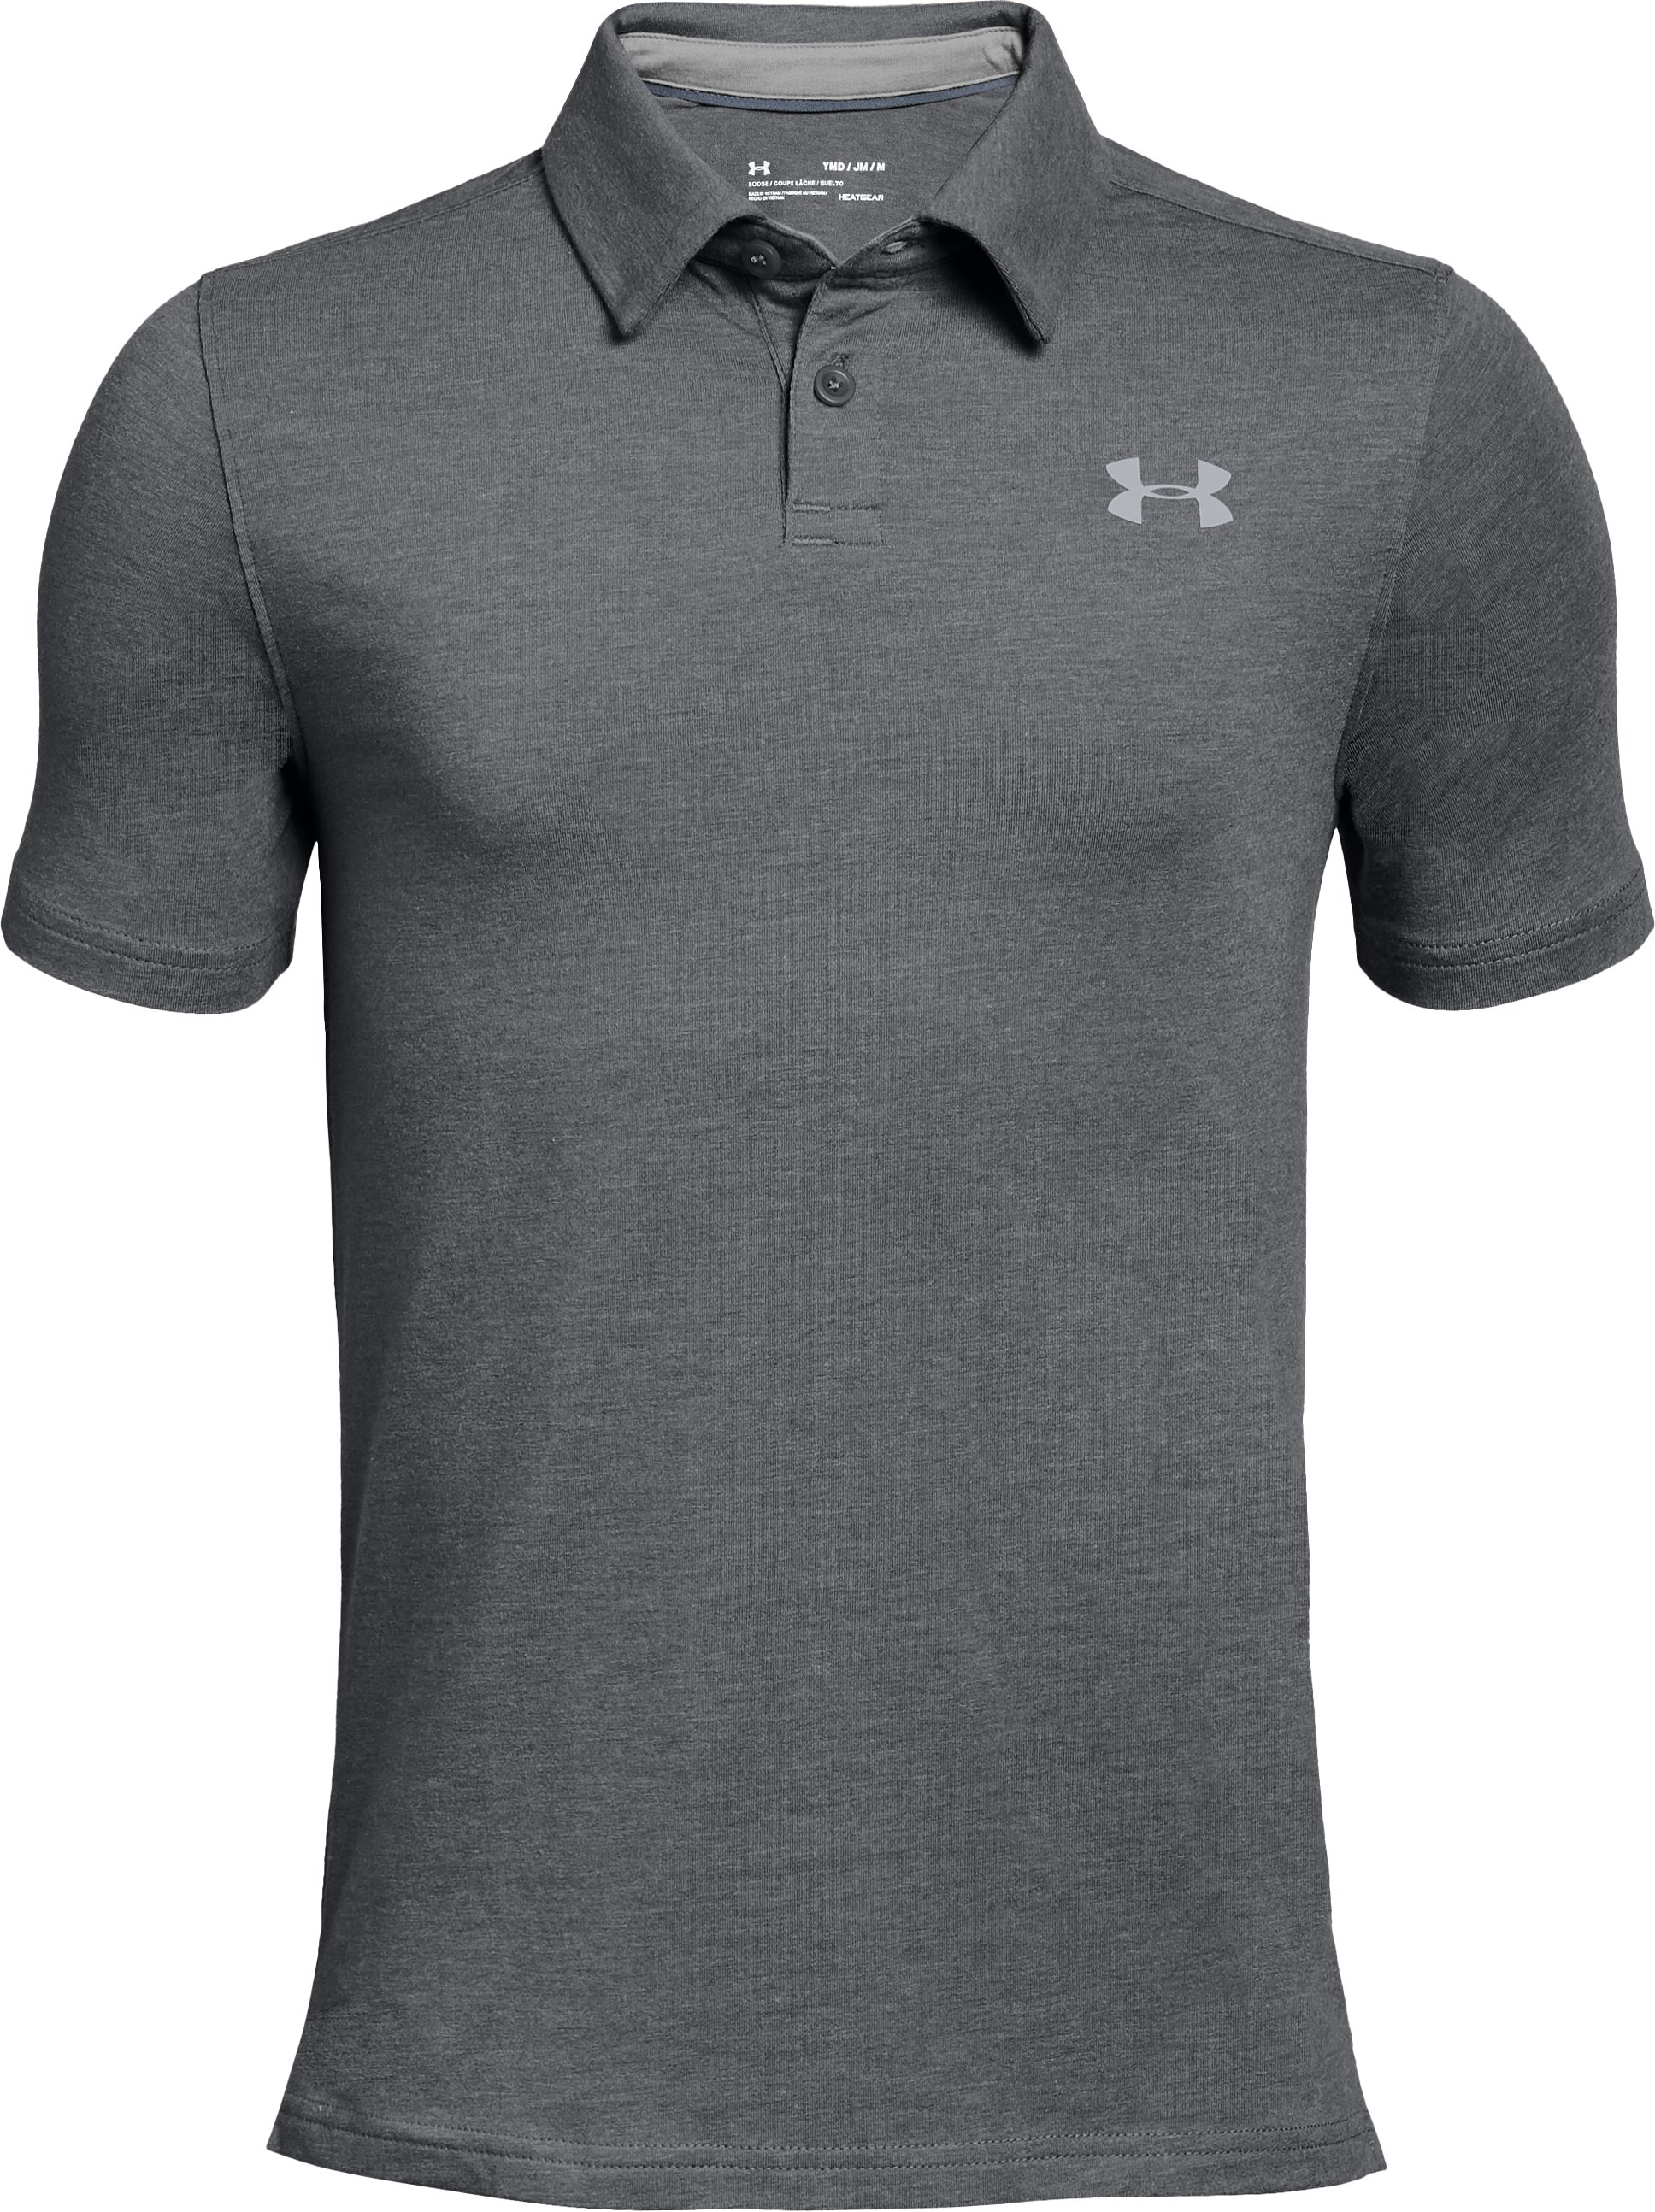 Boys' Charged Cotton® Heather Polo, Graphite